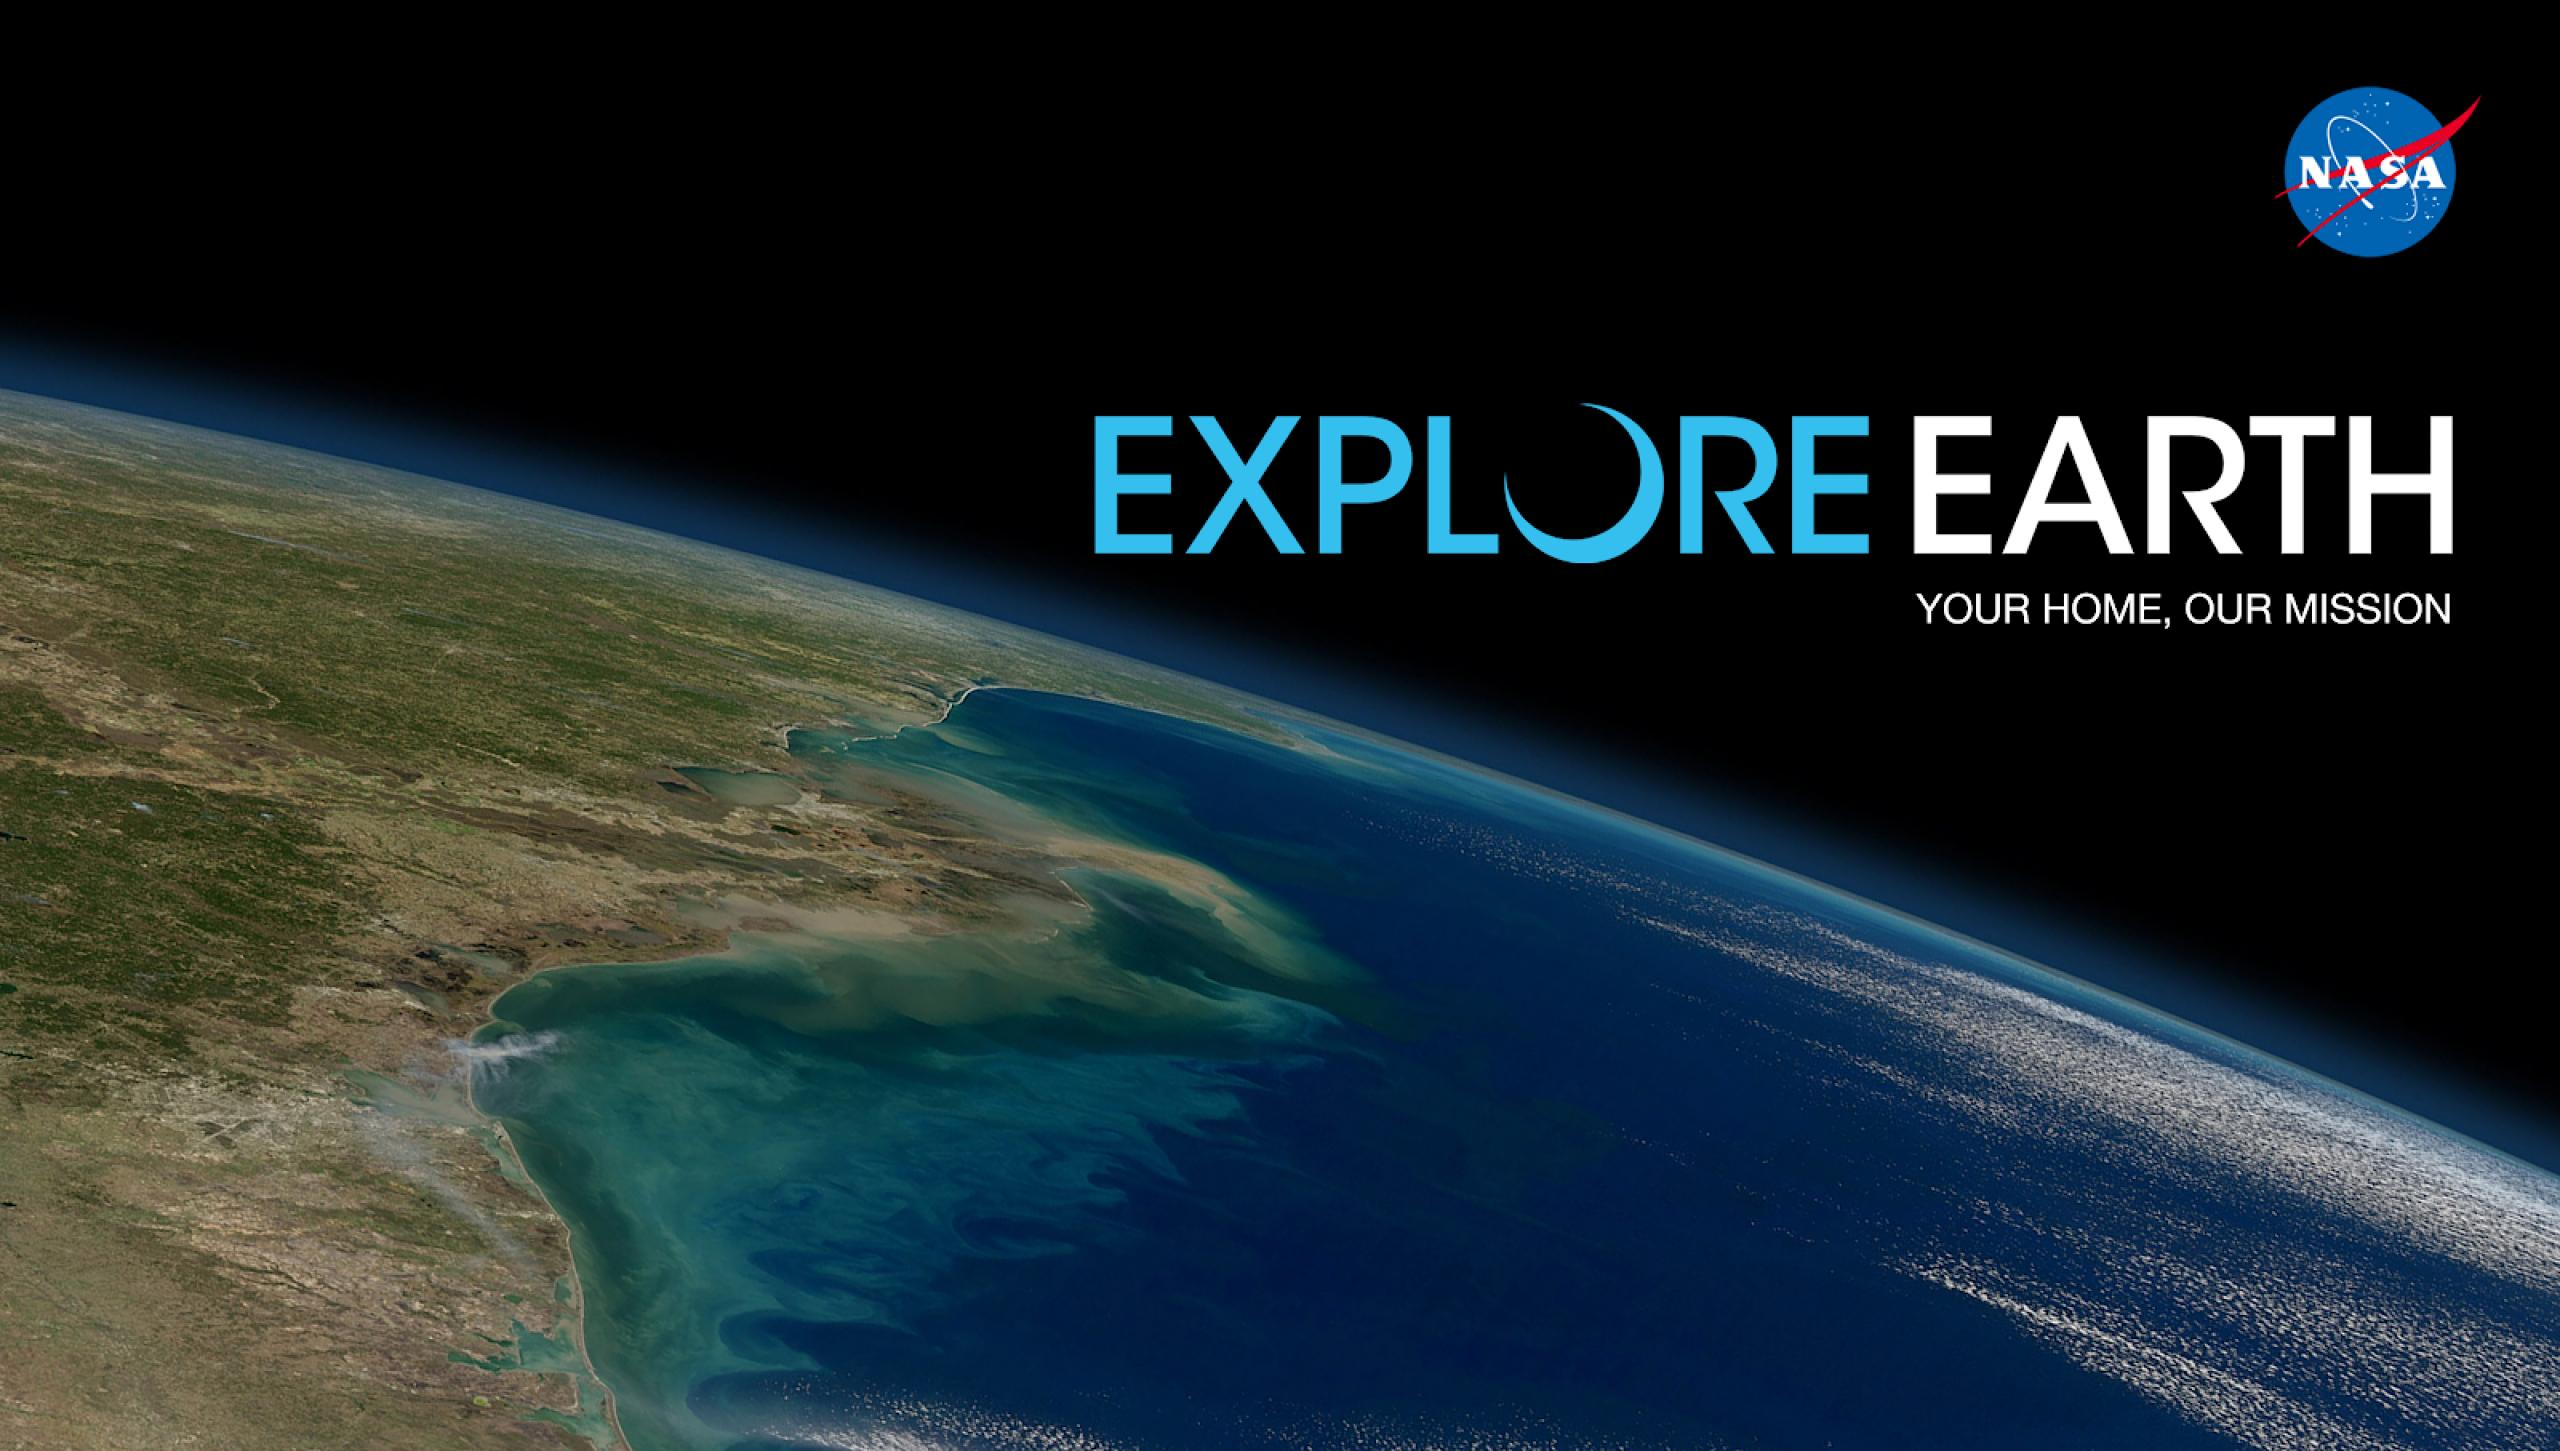 Explore Earth title overlaying an image of the earth